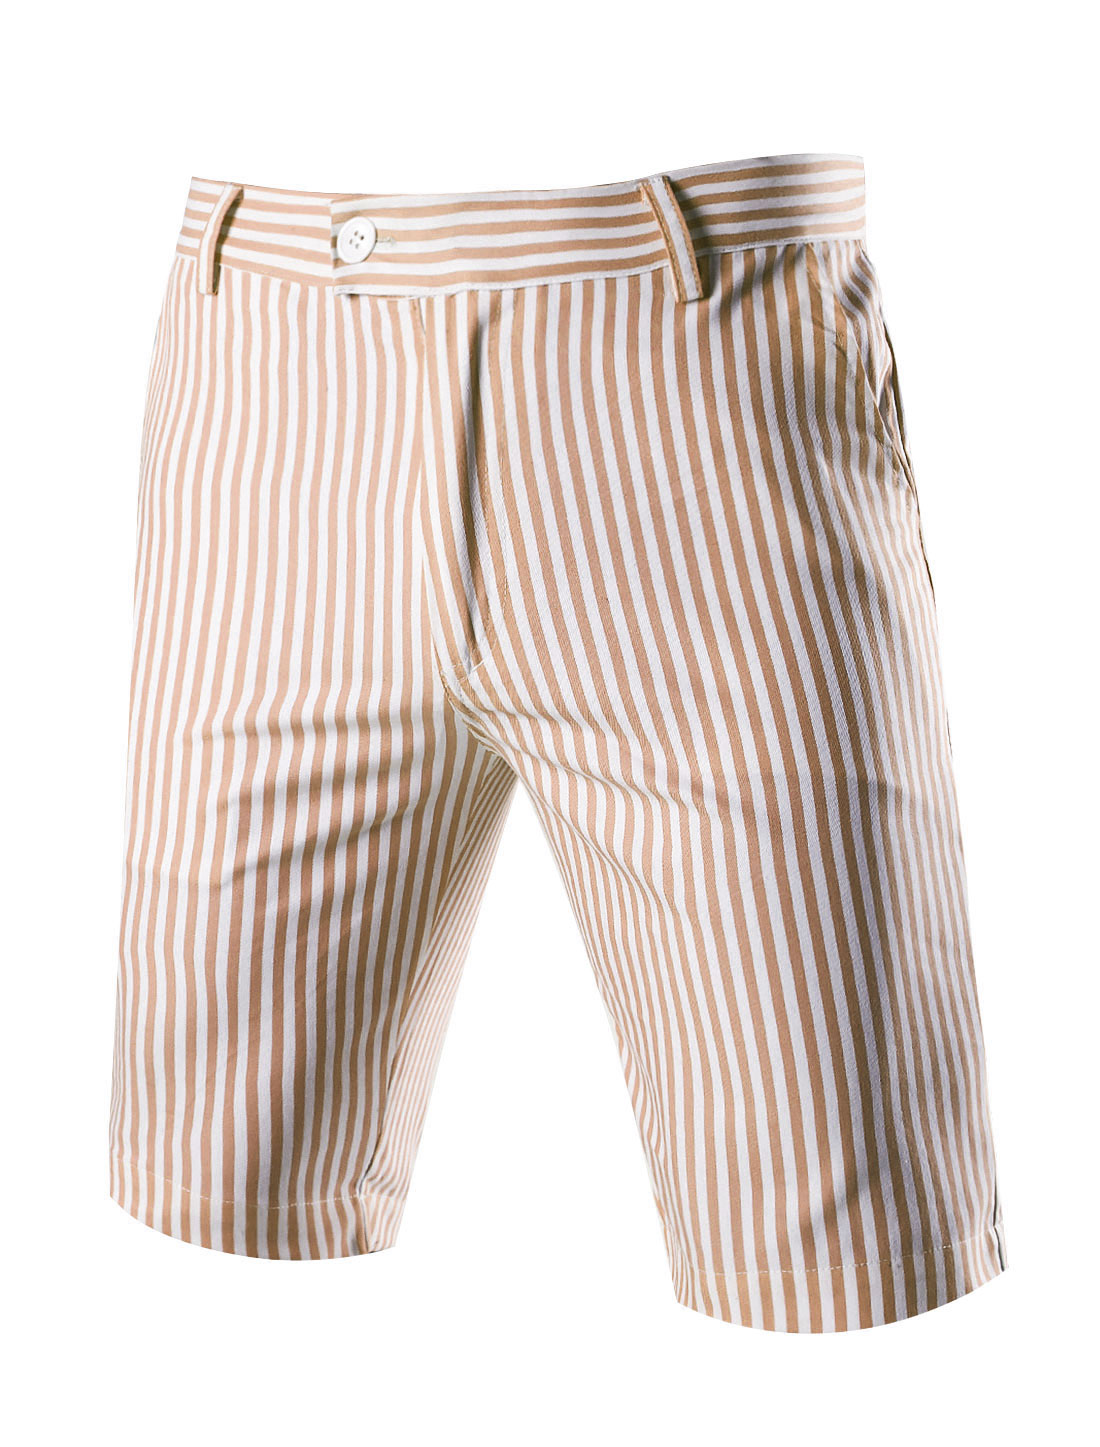 Men Vertical Stripes Four Pockets Casual Chino Shorts Beige W34